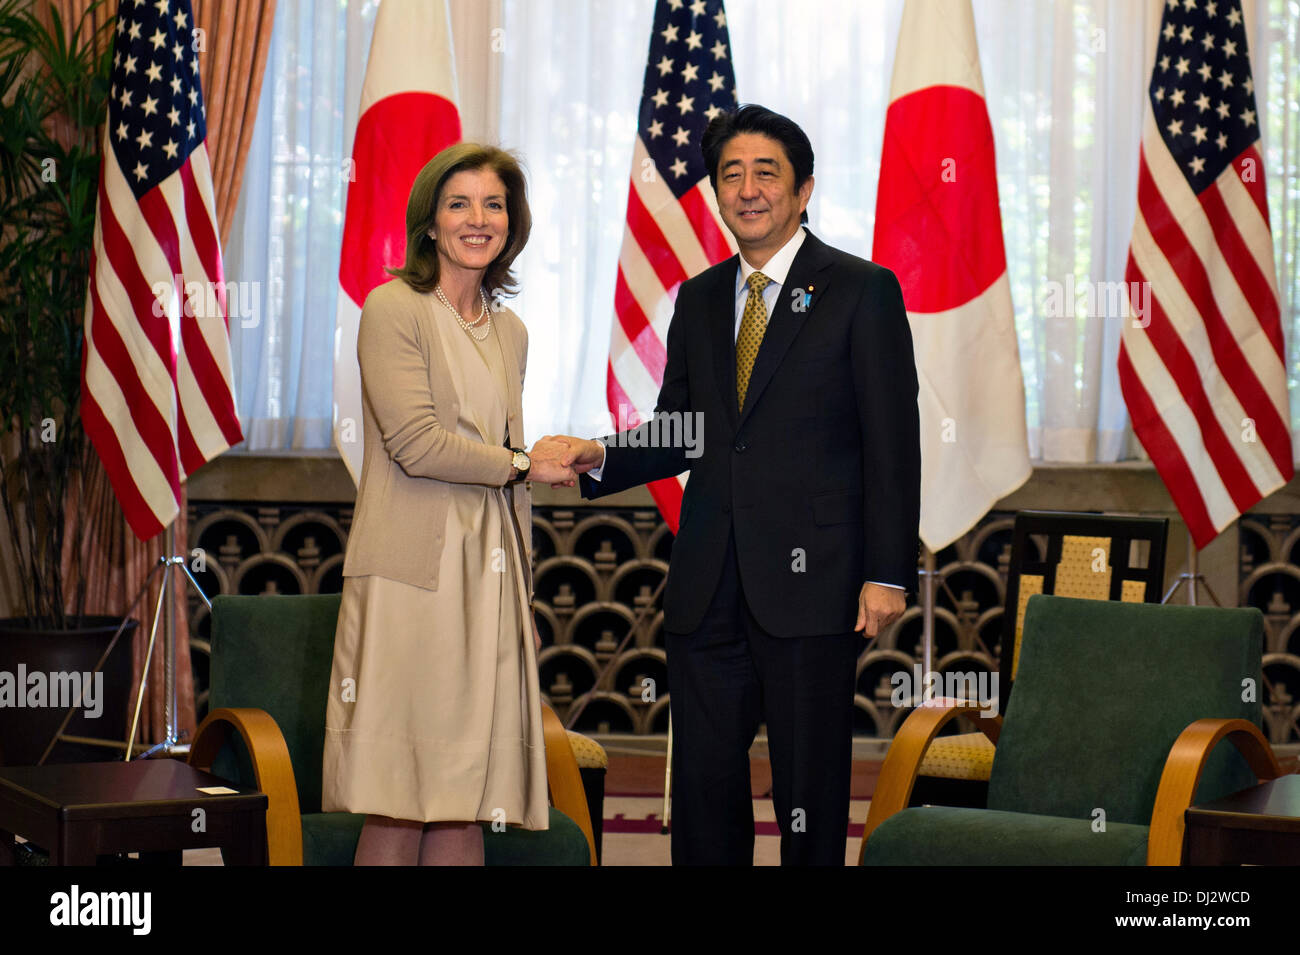 US Ambassador Caroline Kennedy pays a courtesy call on